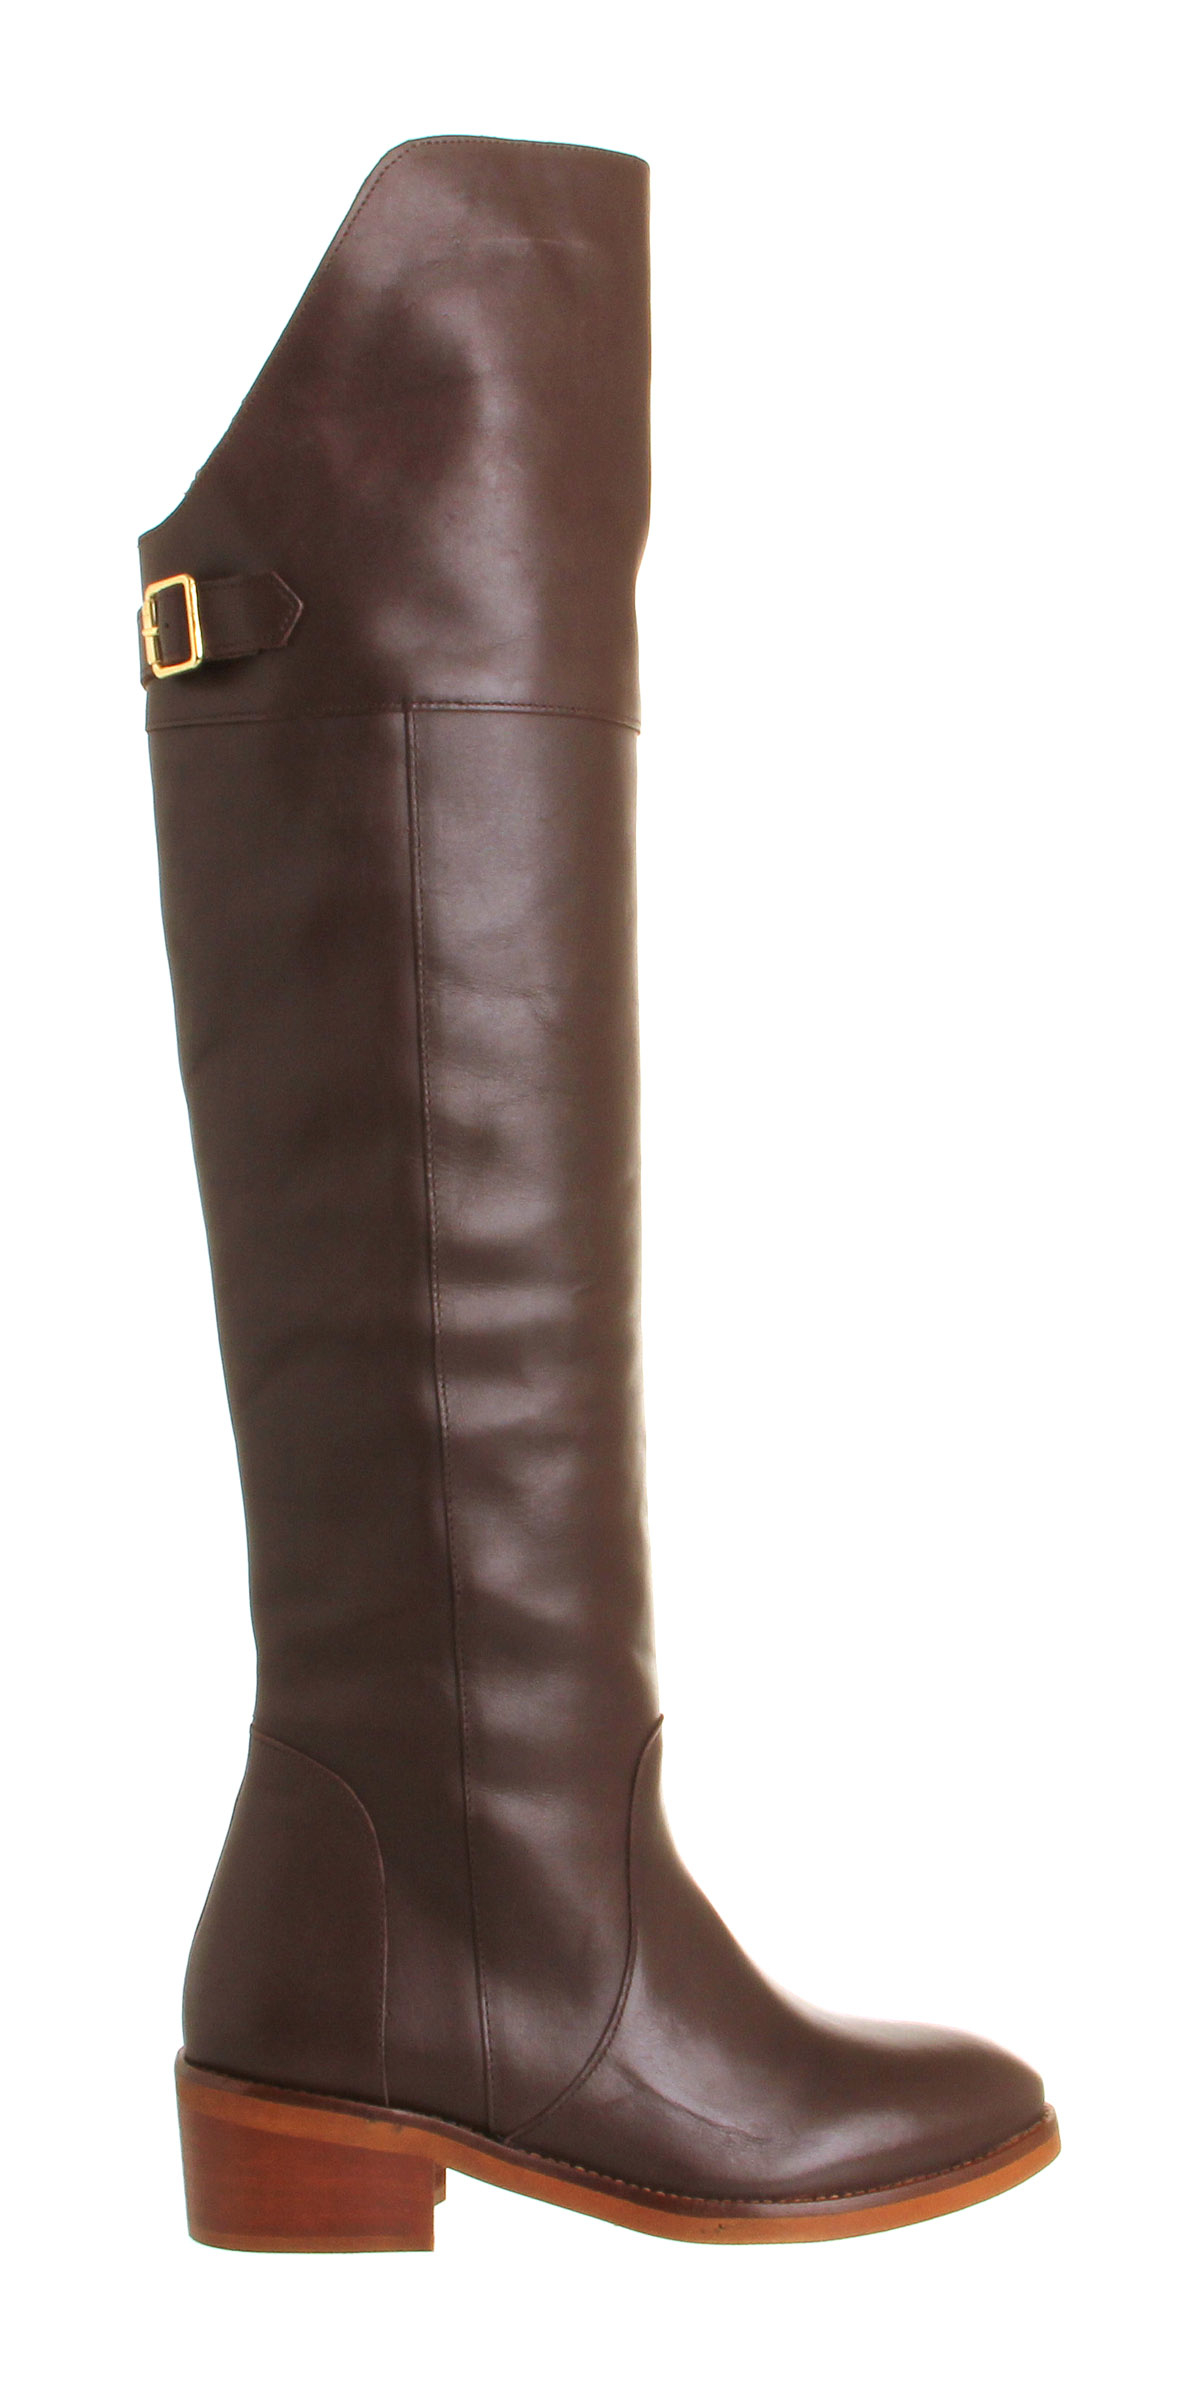 office nocturnal the knee boots in brown lyst